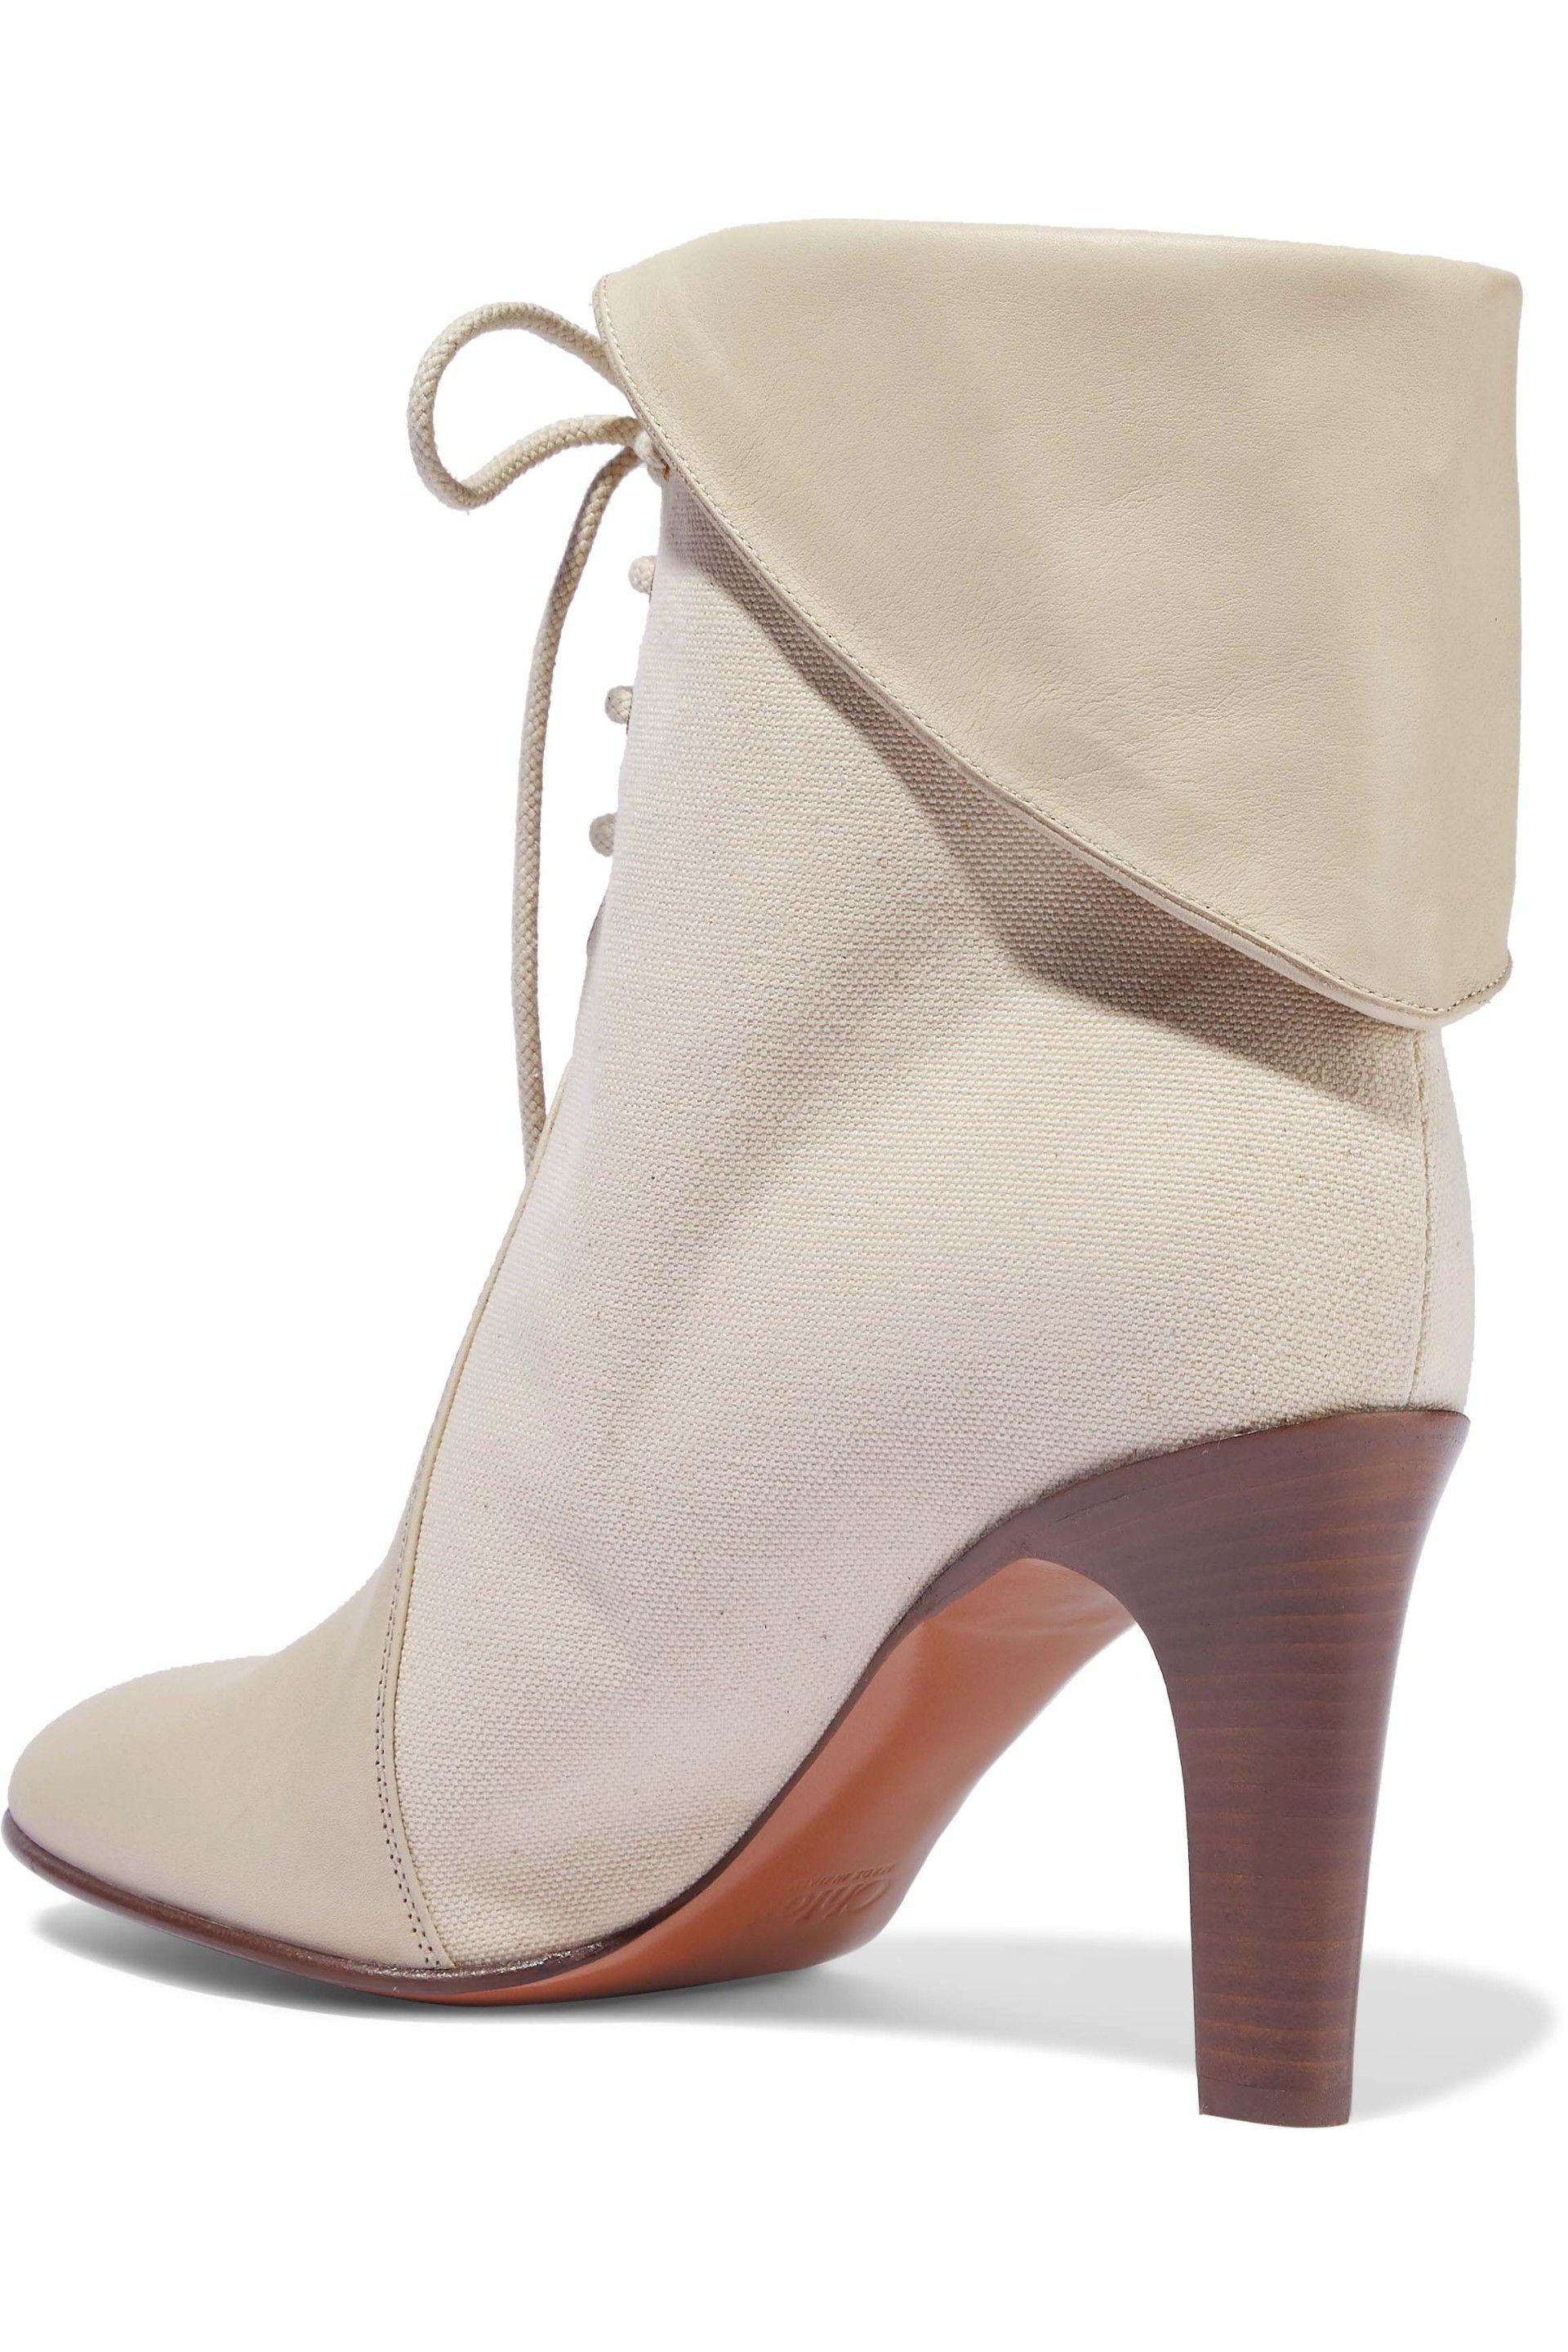 ca2bf76a8f Chloé Chloé Woman Kole Leather-paneled Canvas Ankle Boots Ecru in ...